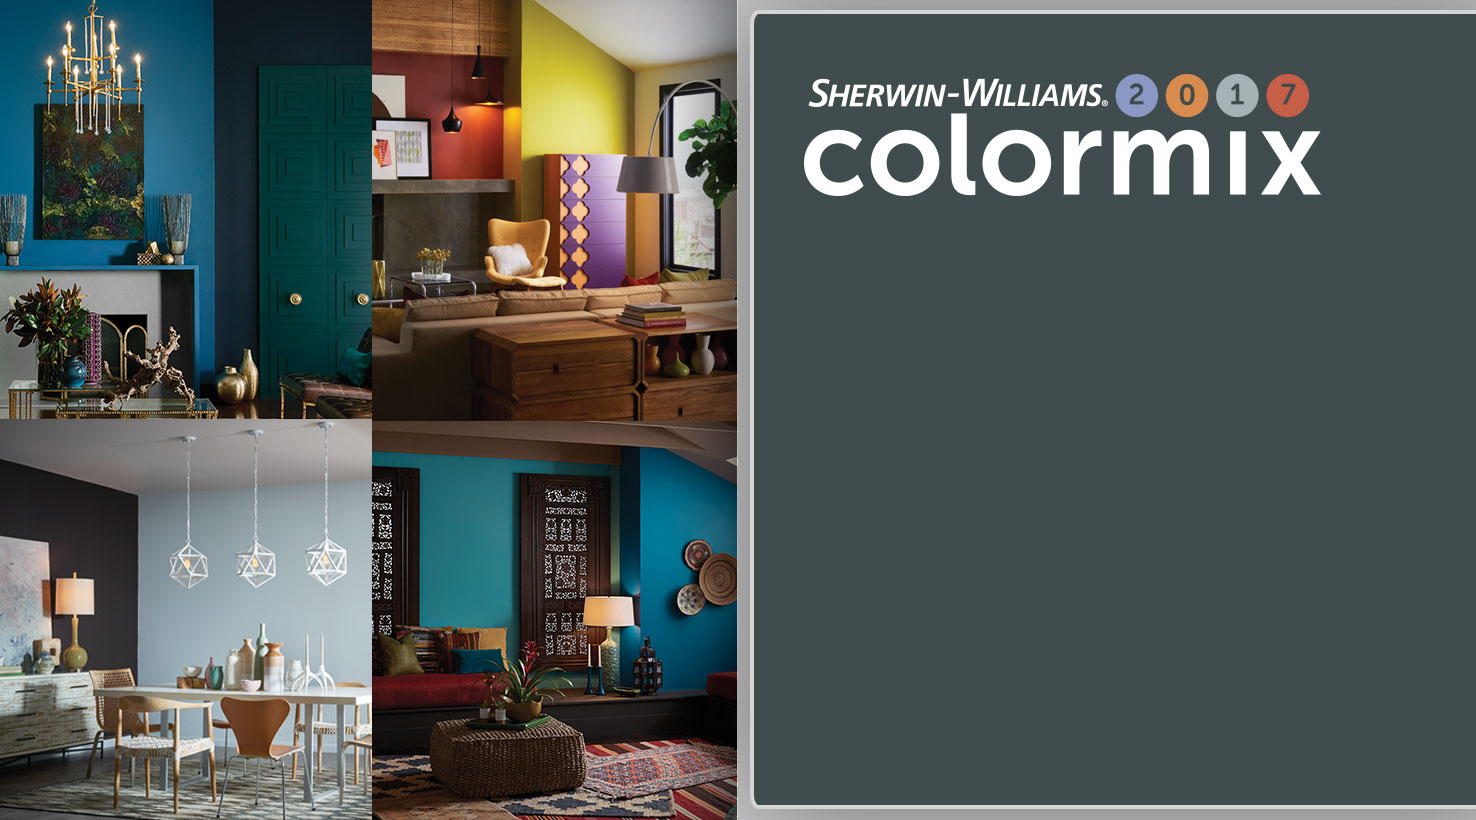 commercial paint colors paint color palette from sherwin williams. Black Bedroom Furniture Sets. Home Design Ideas